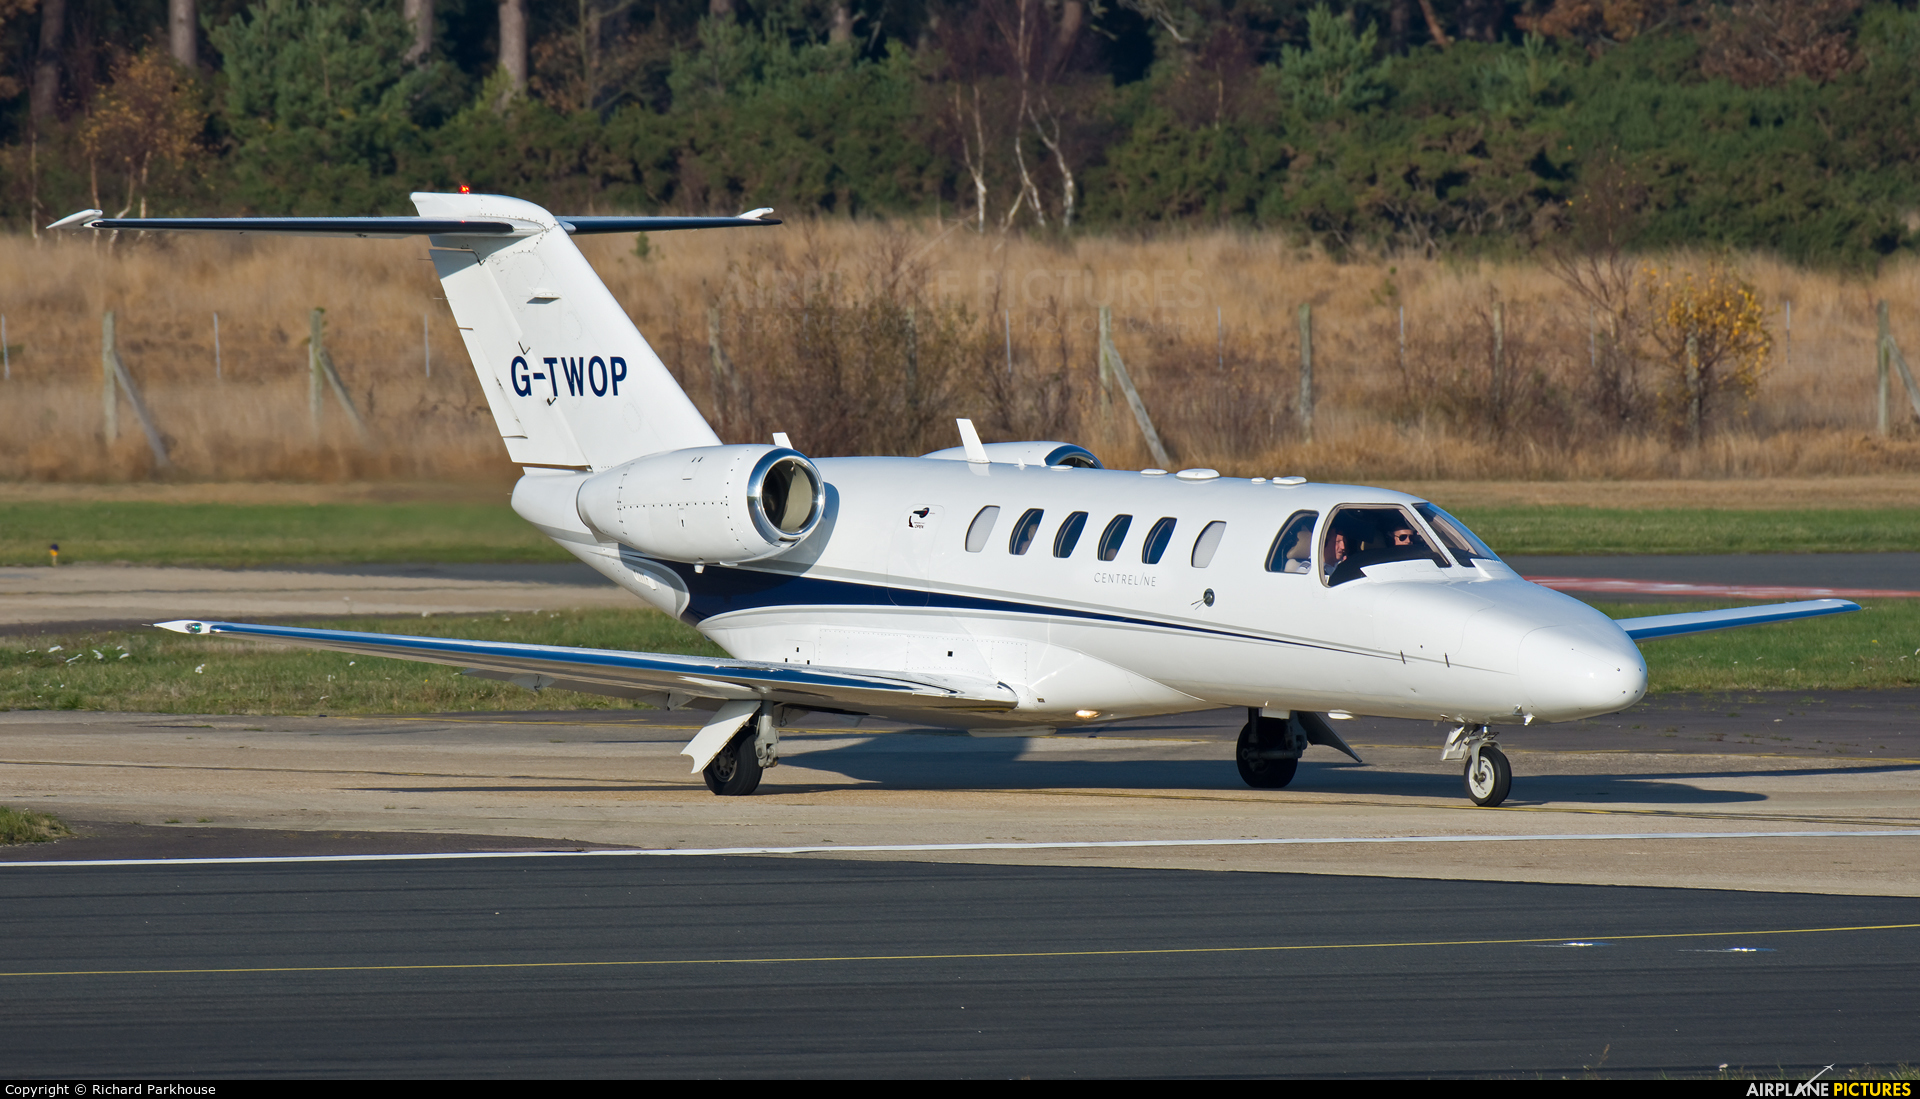 Centreline Air Charter G-TWOP aircraft at Farnborough